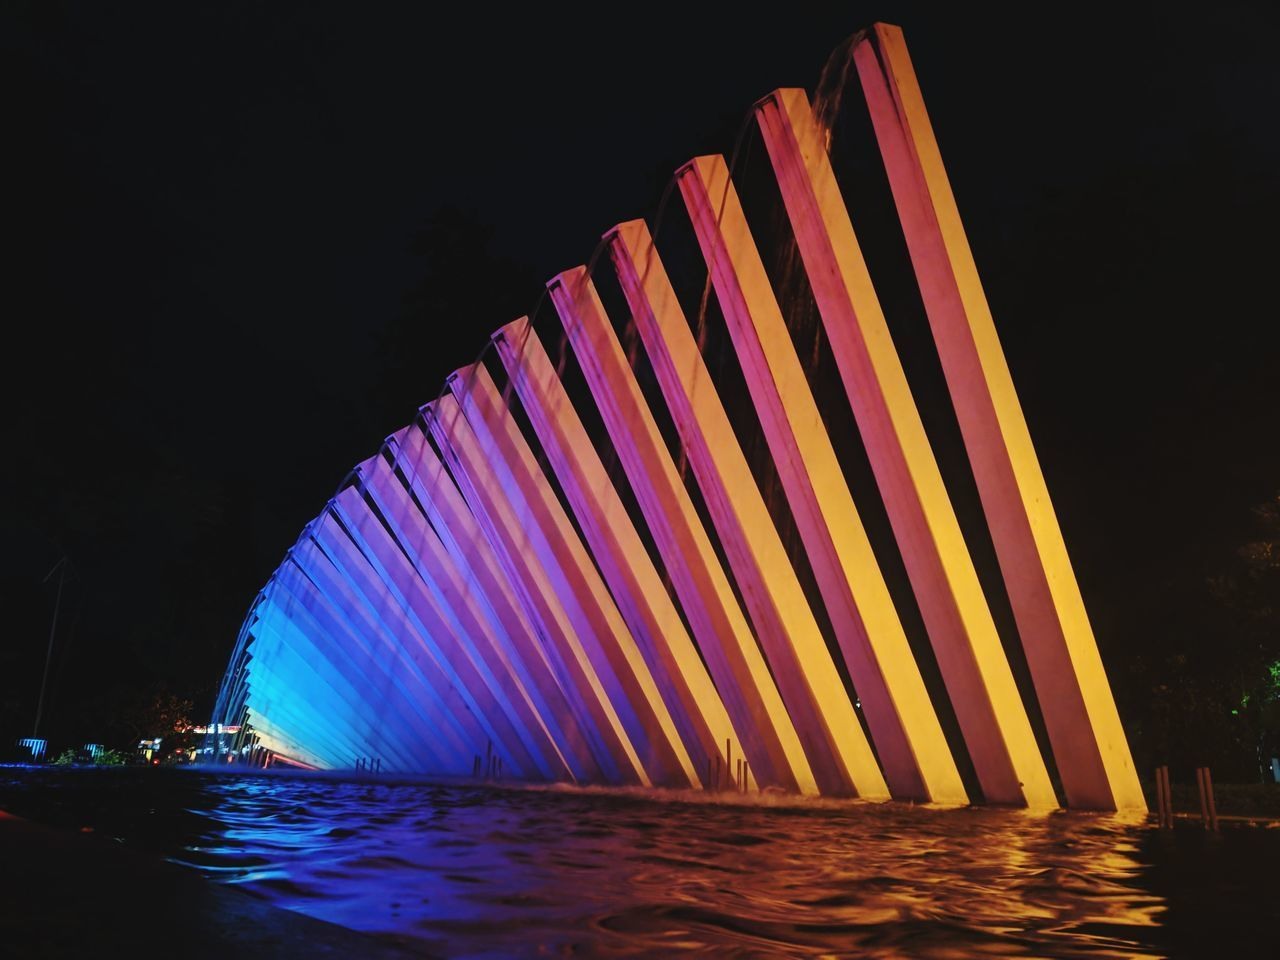 night, illuminated, water, multi colored, no people, nature, reflection, pattern, sea, glowing, motion, sky, architecture, built structure, outdoors, waterfront, striped, lighting equipment